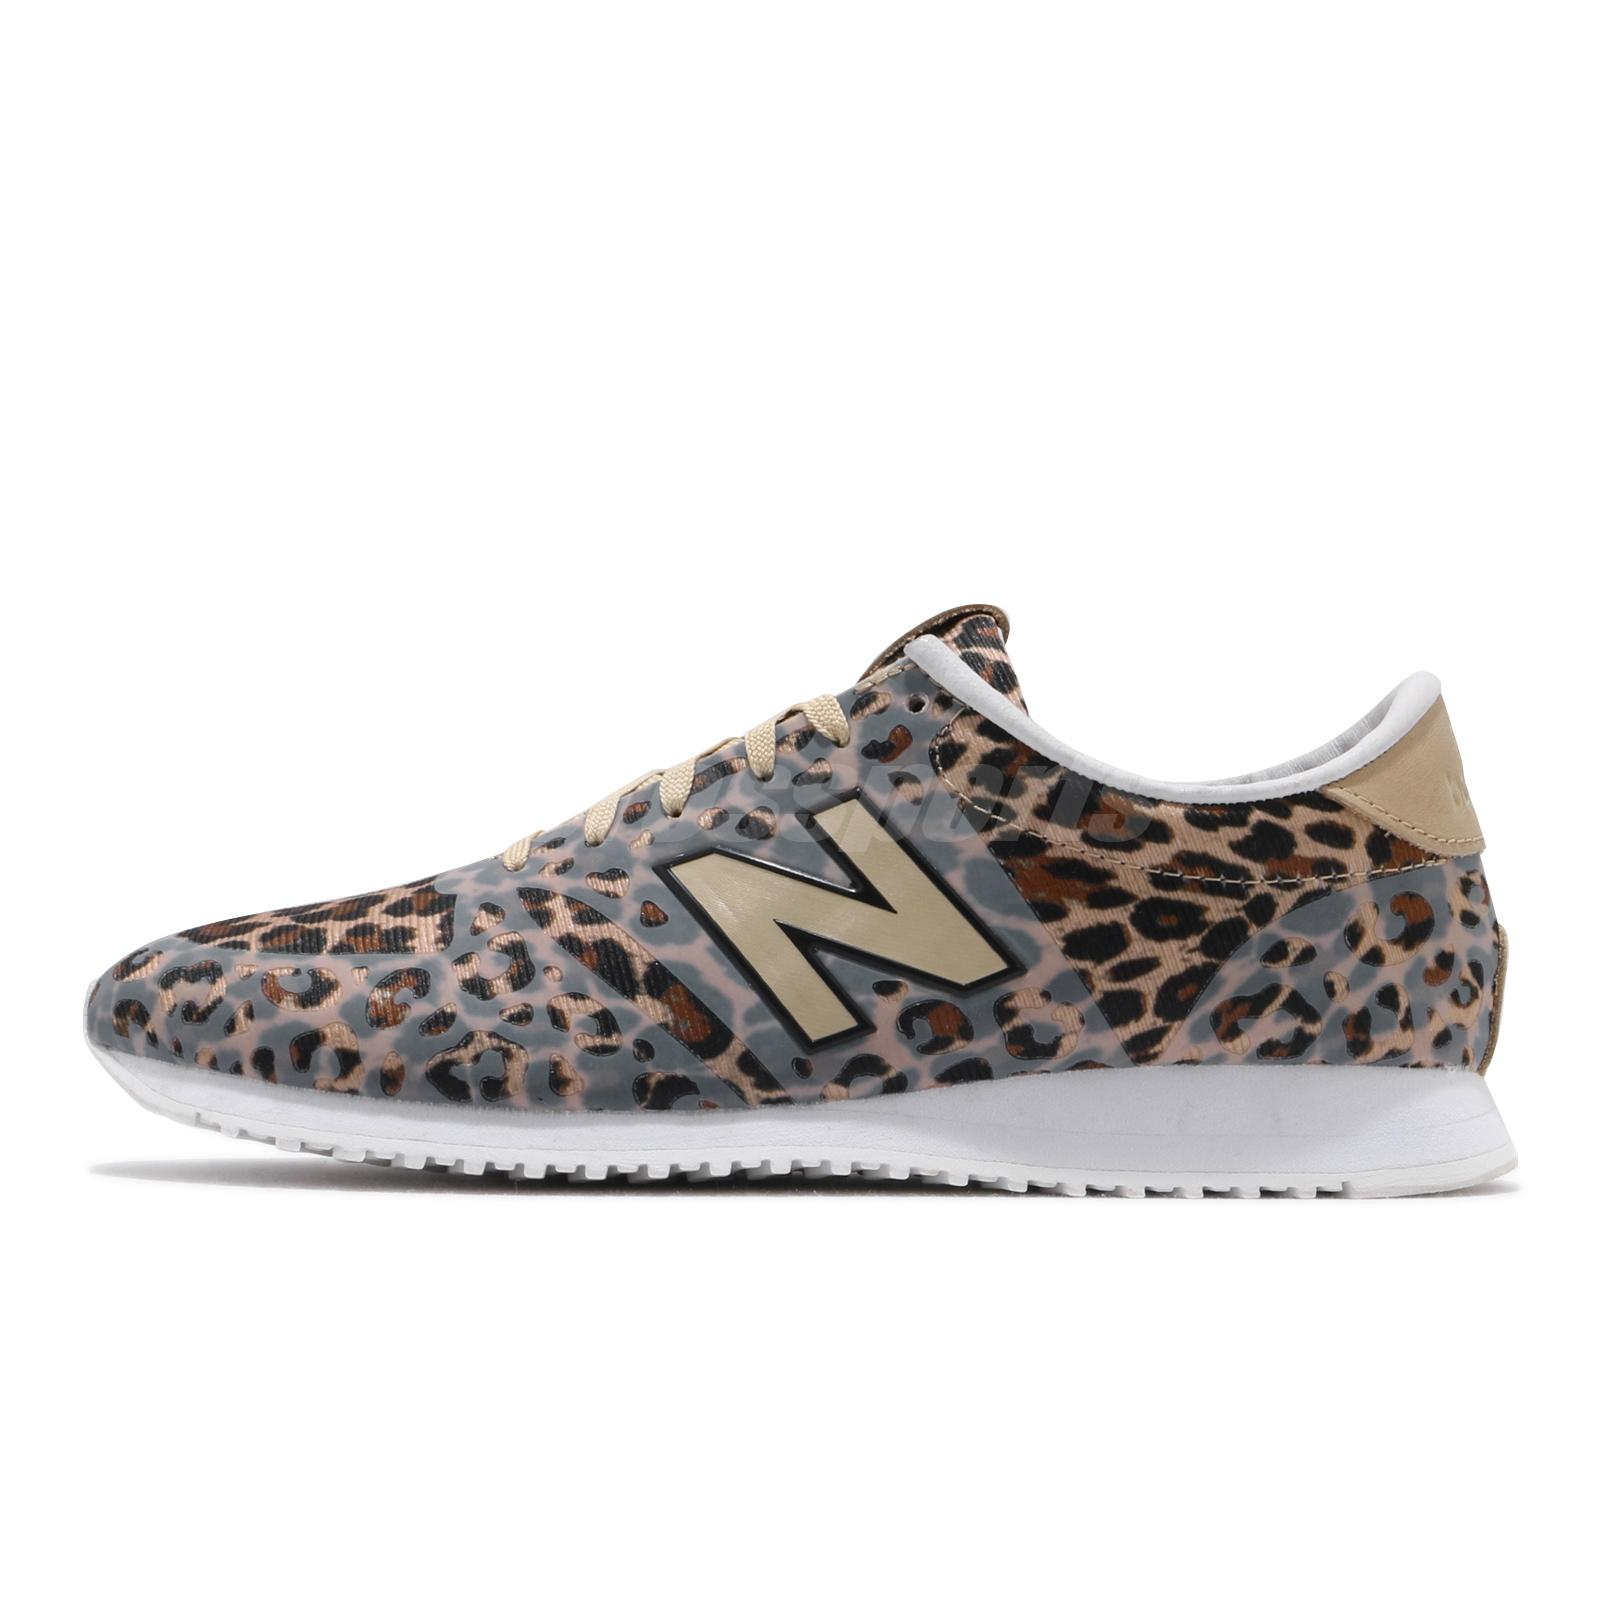 Find great deals on eBay for leopard print running shoes. Shop with confidence.